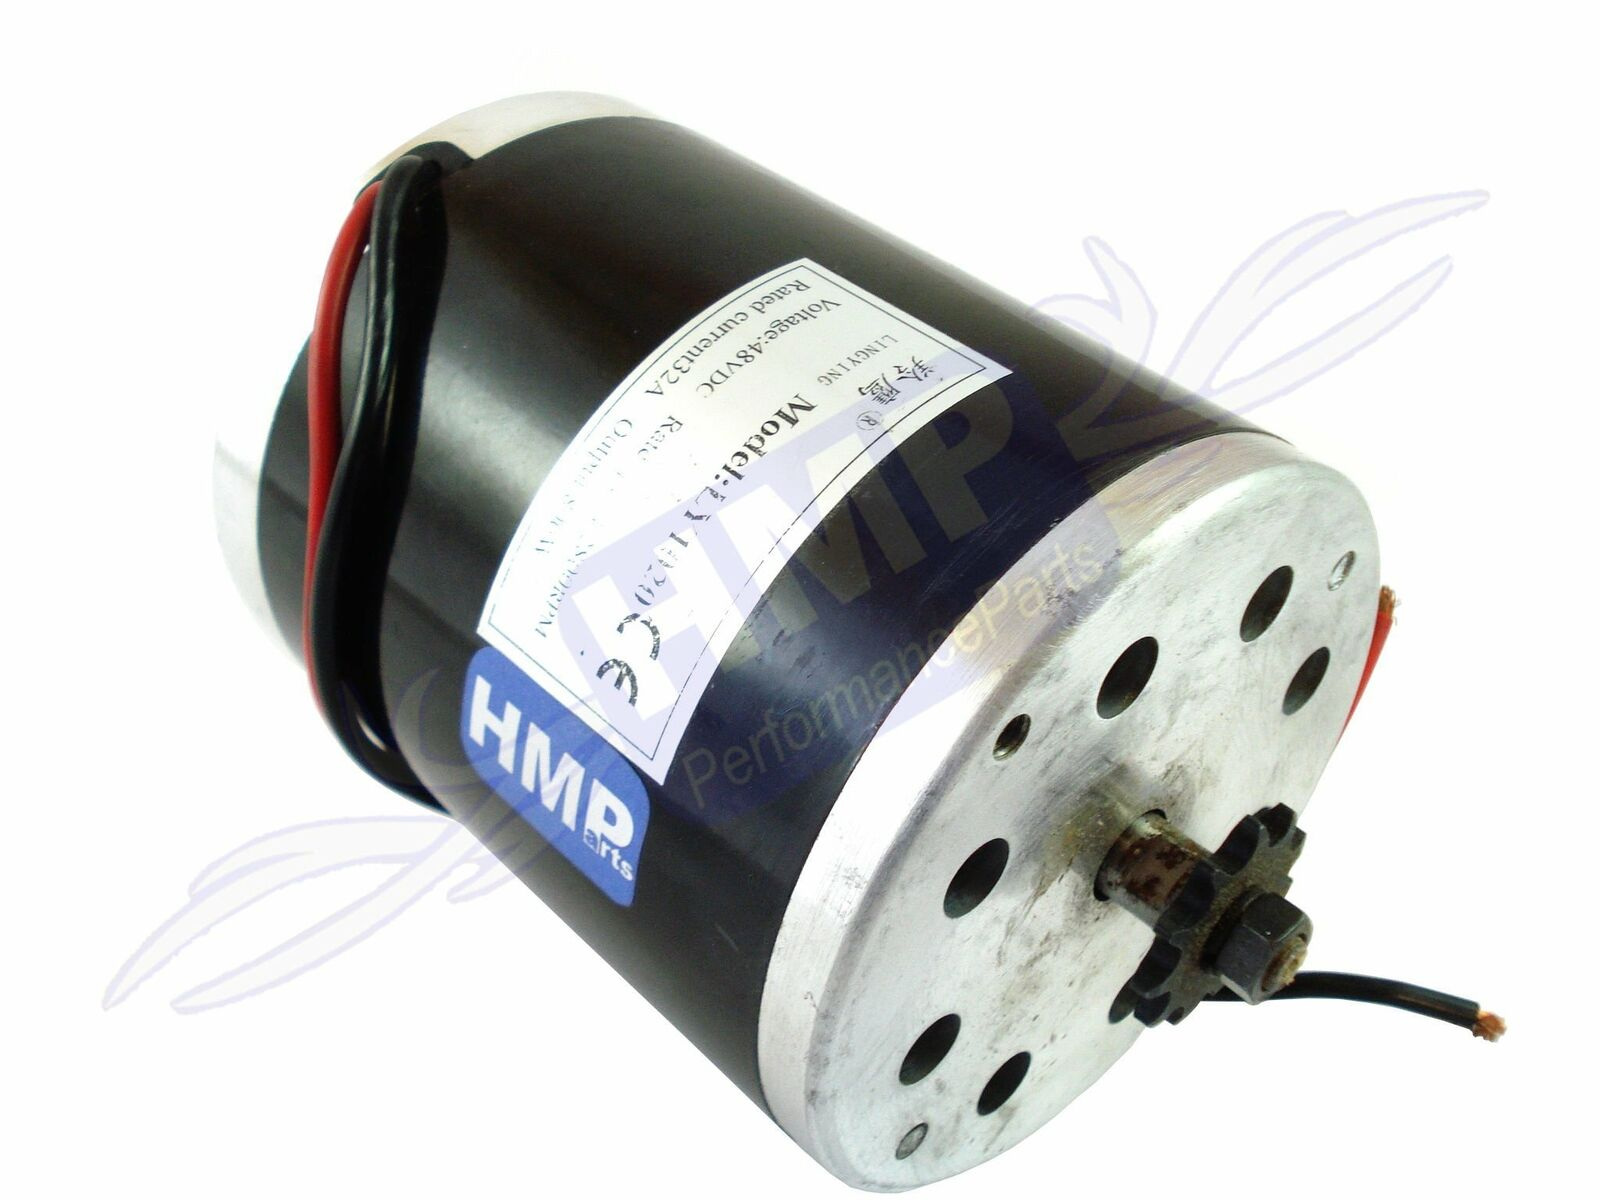 Hmparts E-Scooter Rc Electric Motor 48v 800w My1020 Type 1